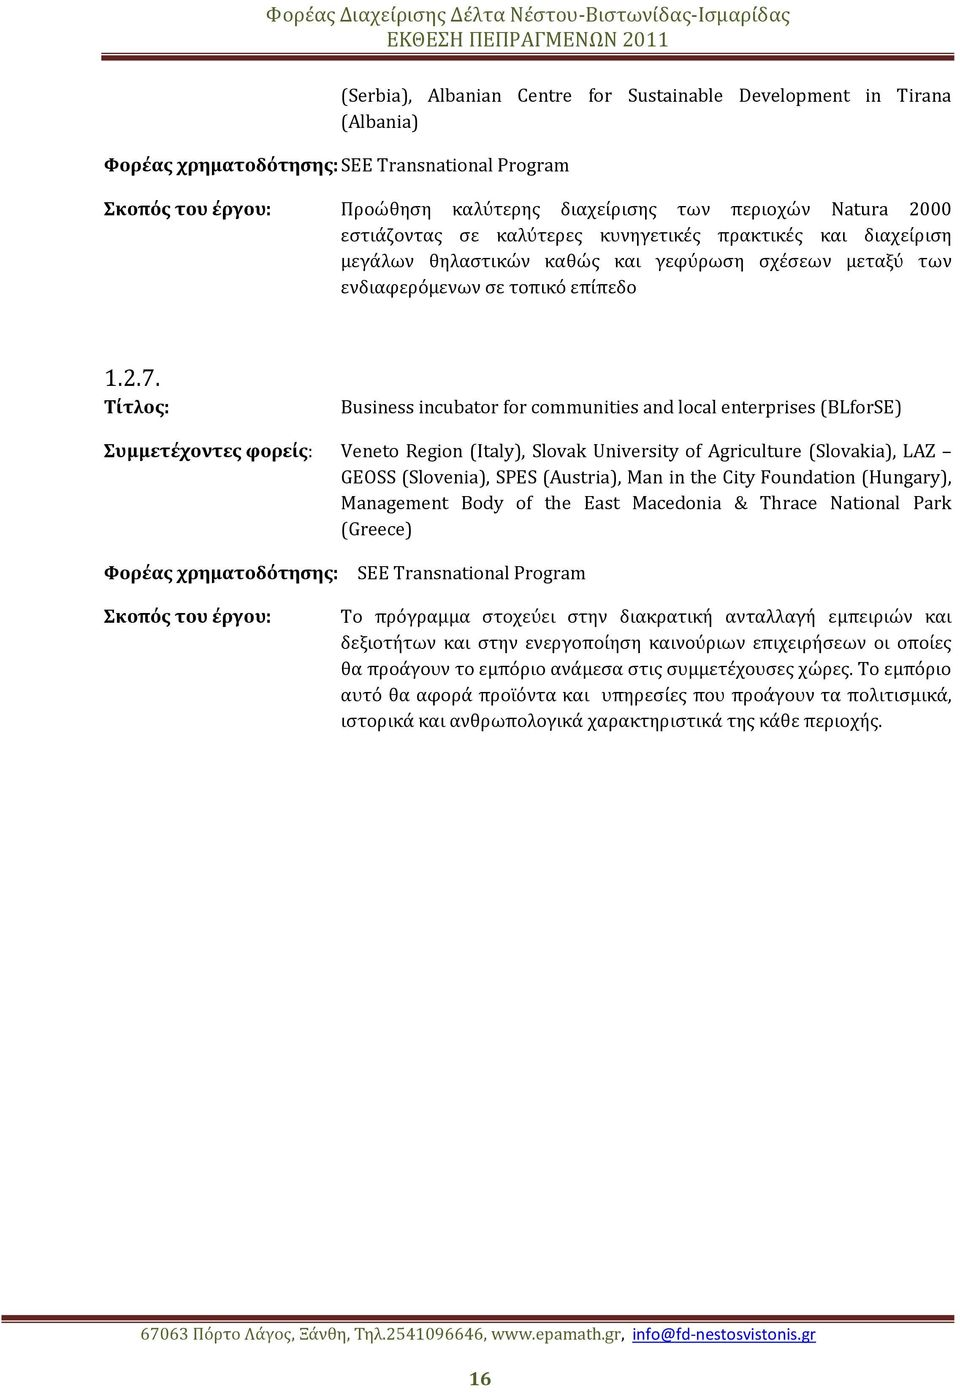 Τίτλος: Business incubator for communities and local enterprises (BLforSE) Συμμετέχοντες φορείς: Veneto Region (Italy), Slovak University of Agriculture (Slovakia), LAZ GEOSS (Slovenia), SPES